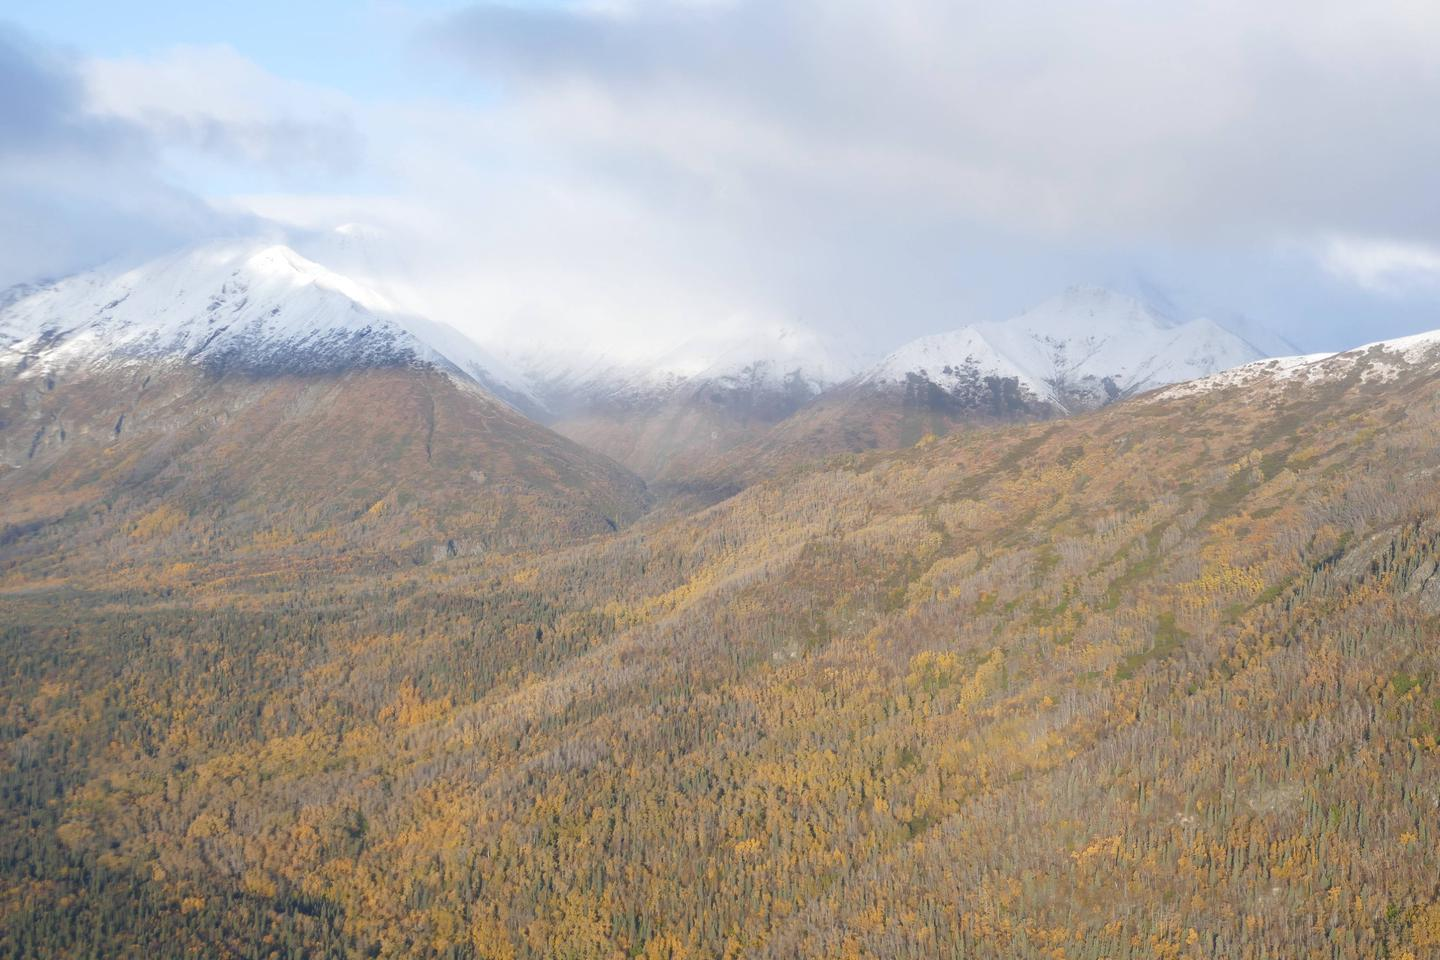 Snow capped peaks shrouded in clouds stand above a mixed forest in fall colors.Overview of the area traversed by the Portage Creek Trail adjacent to the cabin site.